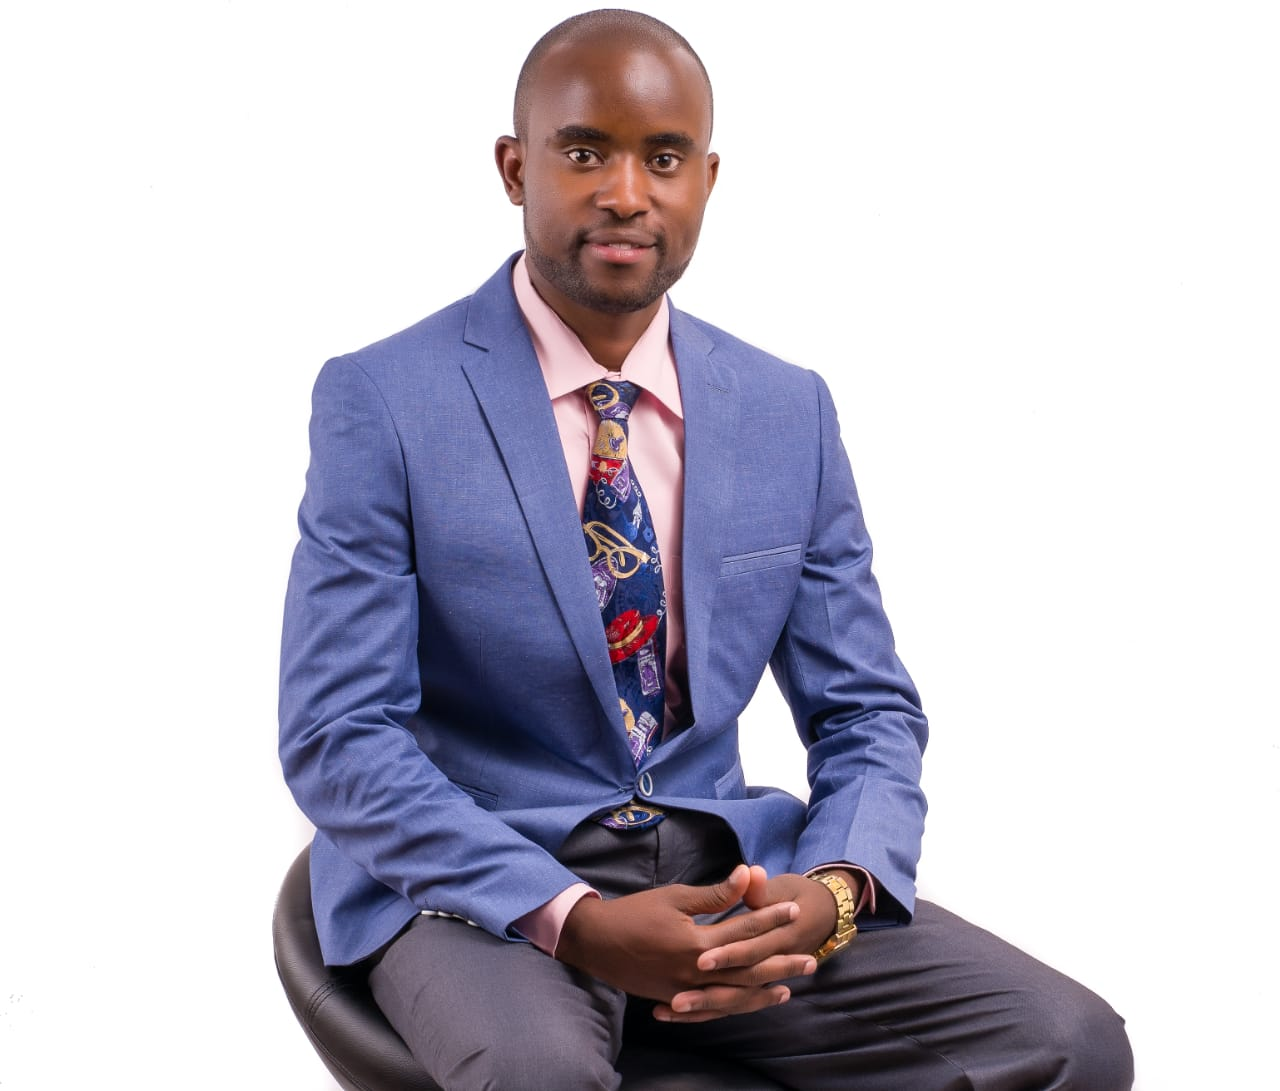 Sam Vidambu got himself addicted to masturbation without knowing. He has helped many quit masturbating. www.businesstoday.co.ke